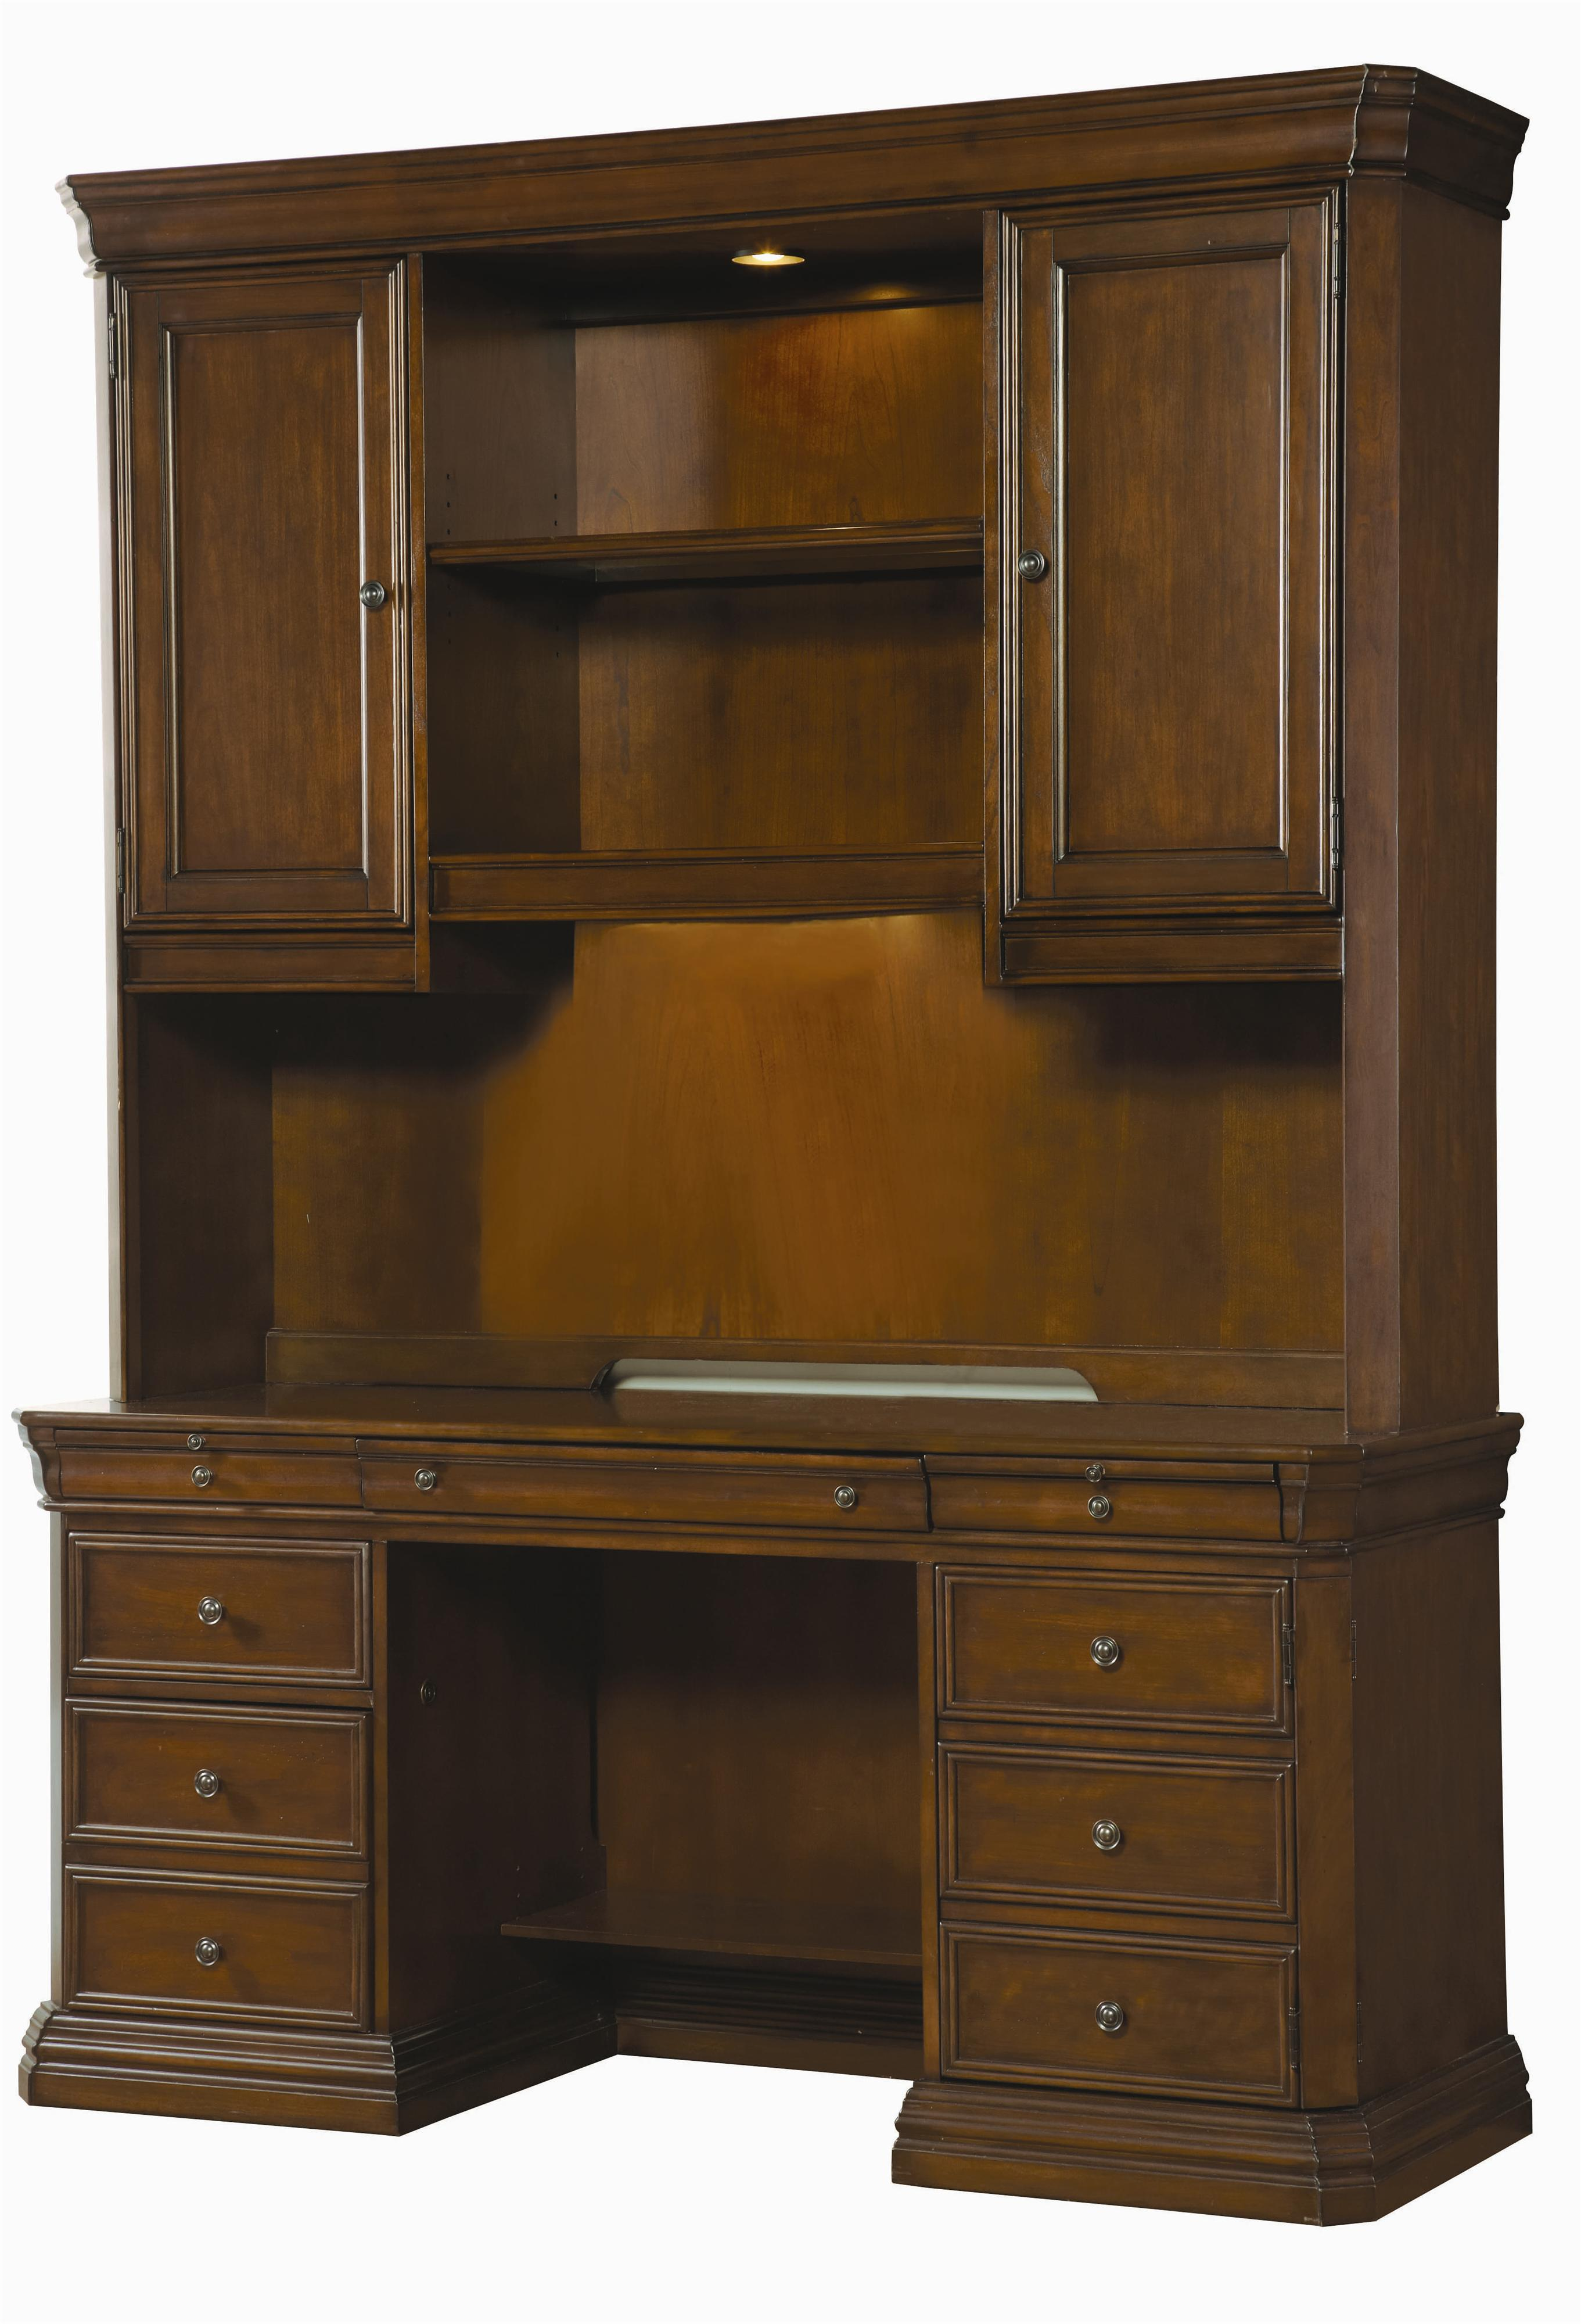 Hooker Furniture Cherry Creek Traditional Desk and Hutch